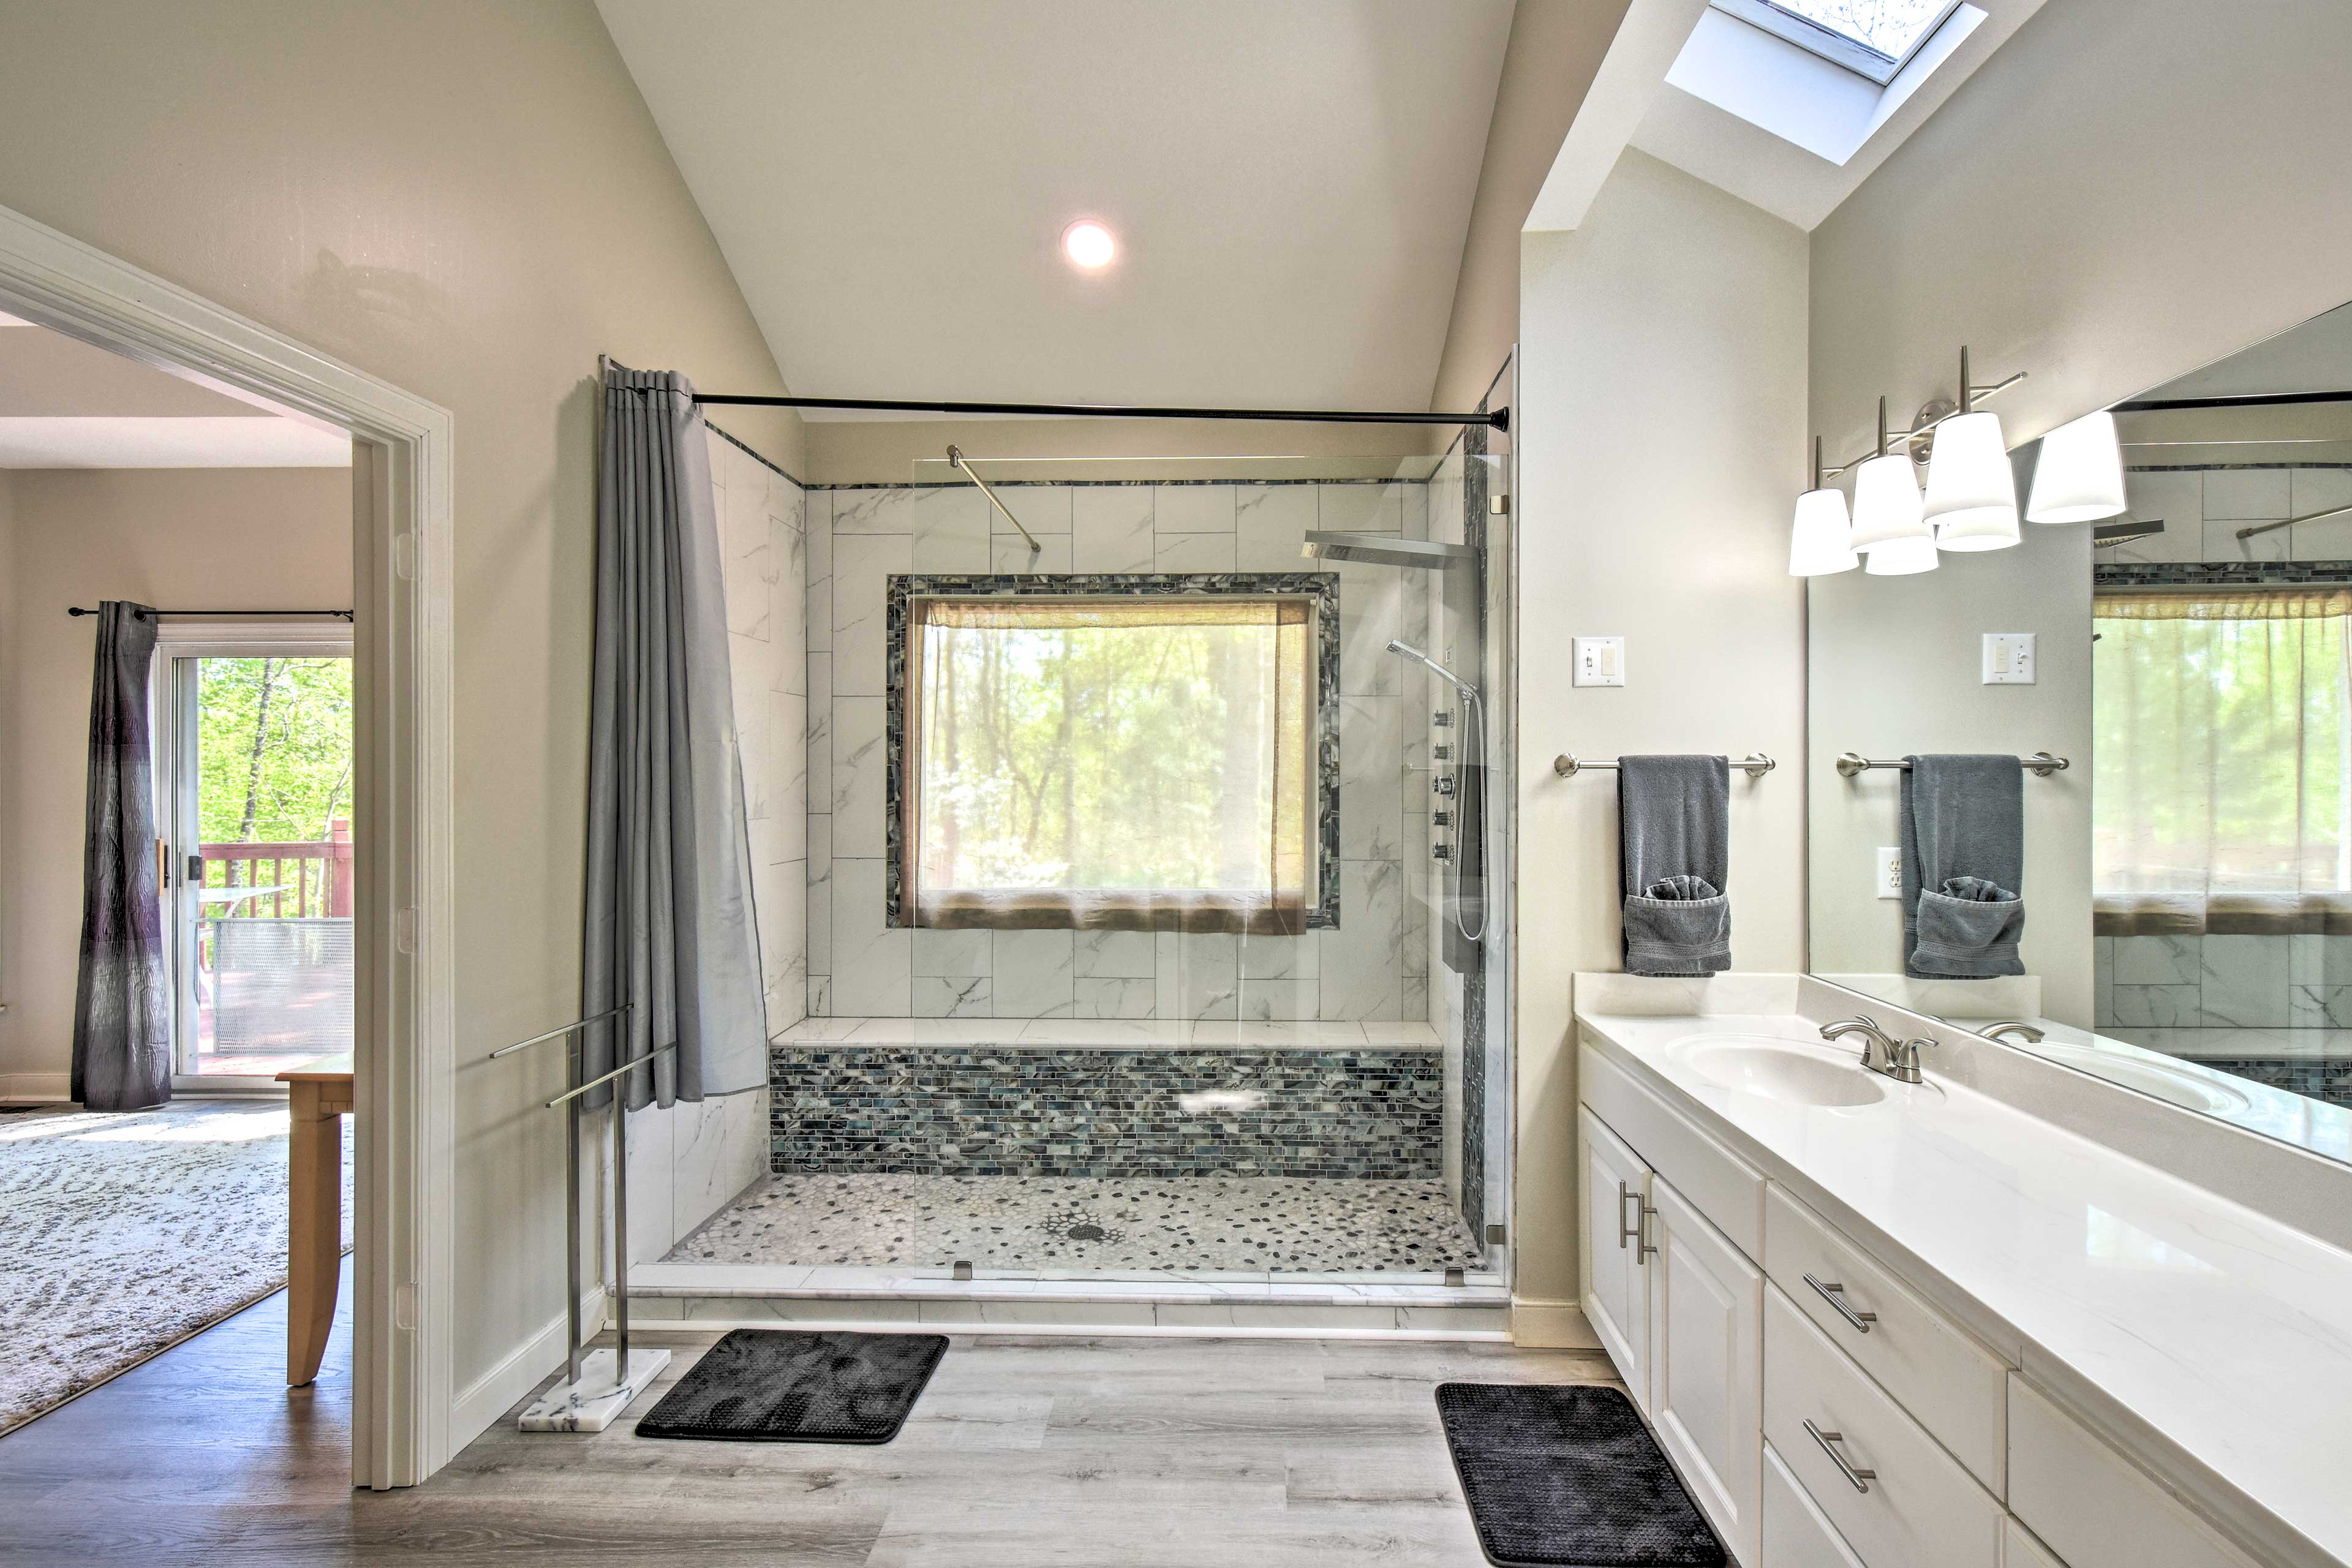 Rinse off in this brand new concept shower!